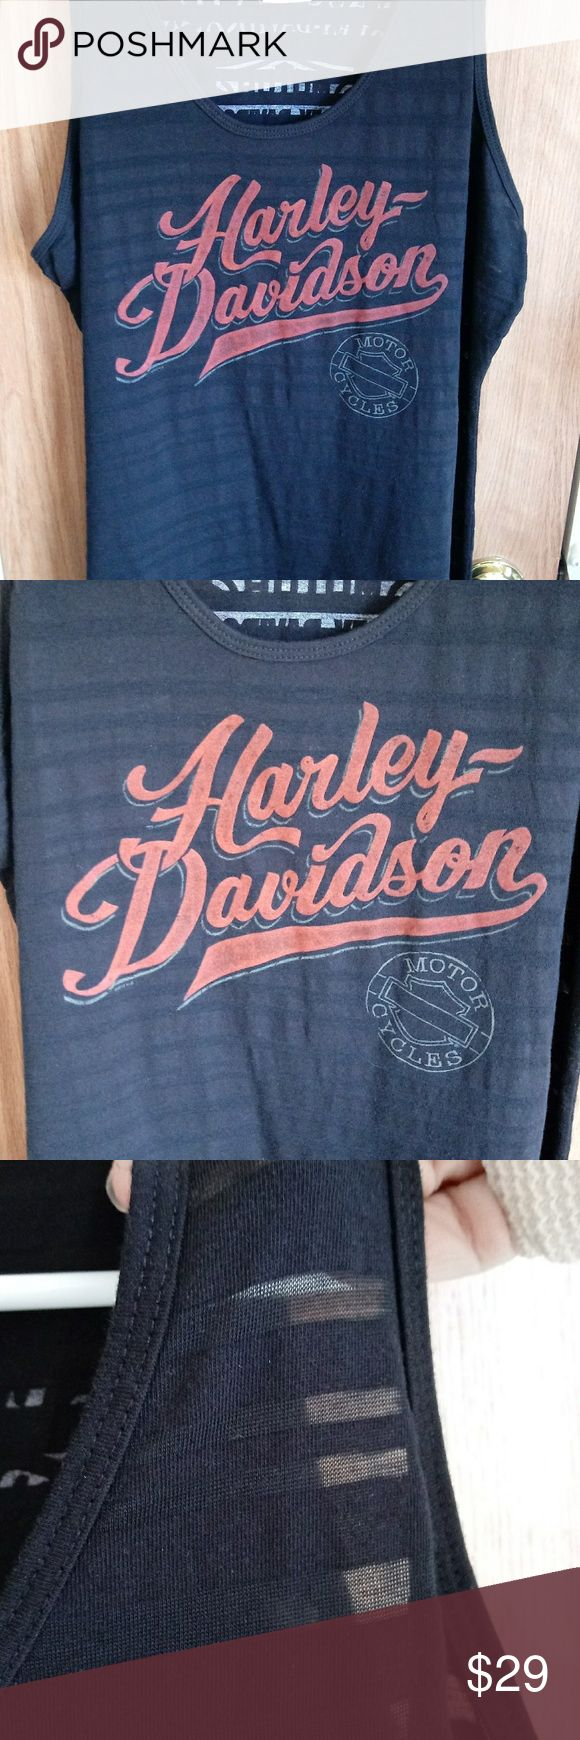 "Sheer Stripe Harley Tank Top Ghost striped Harley tank with front graphic and dealership name on back. 75% polyester 25% cotton Made in the USA 21"" across front Never worn Harley-Davidson Tops Tank Tops"